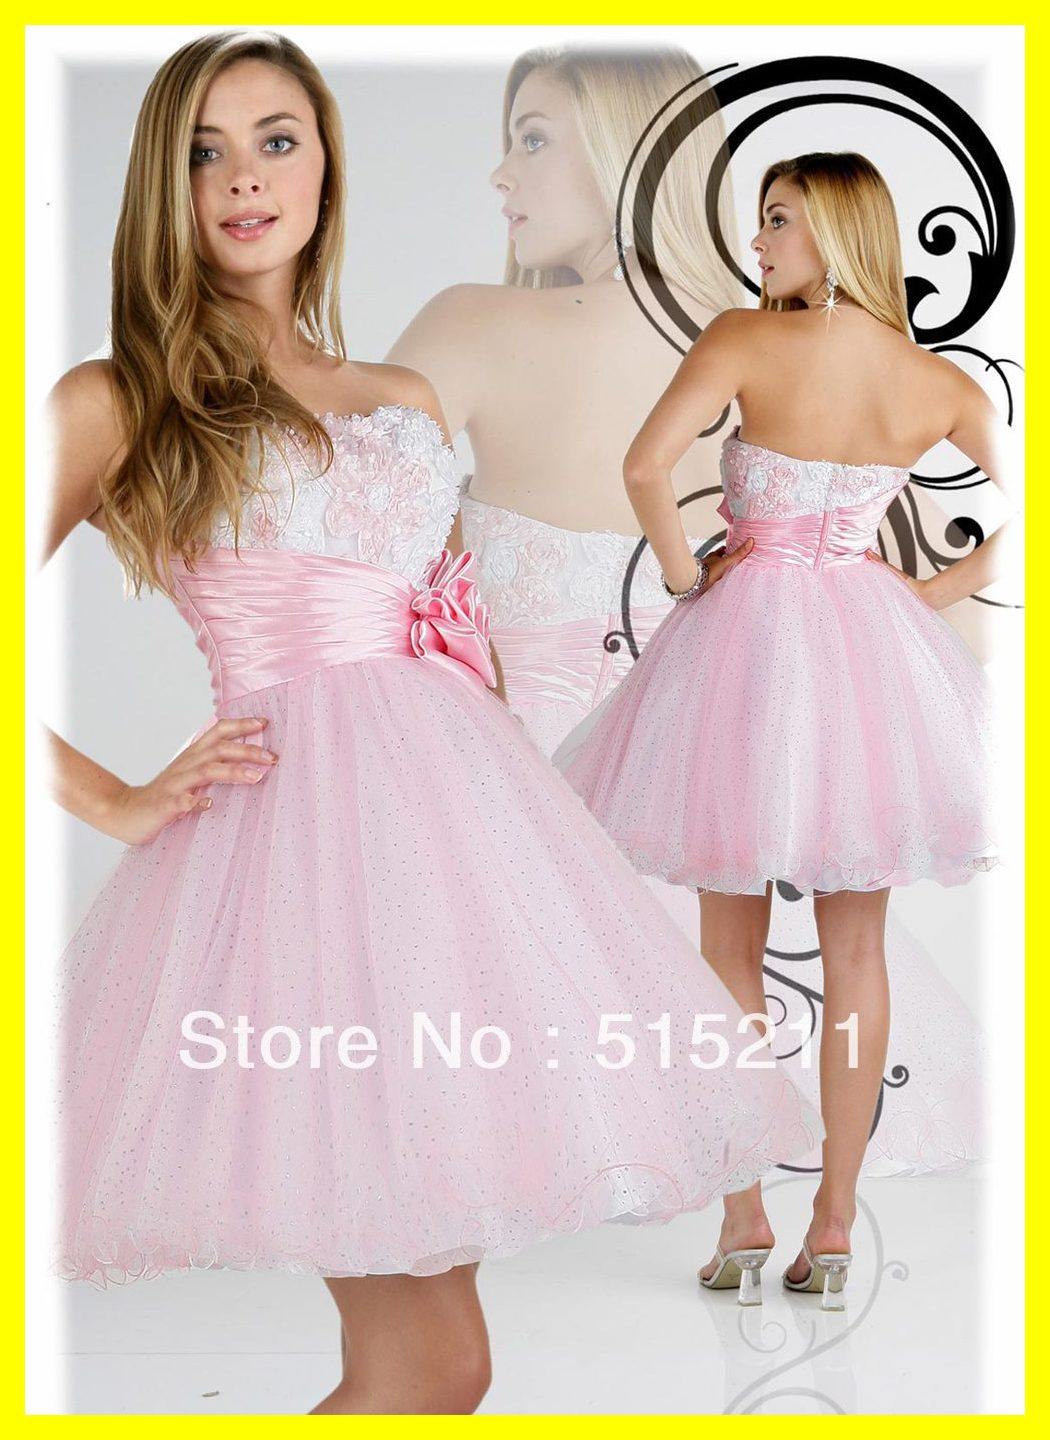 Edgy Prom Dresses Vintage Style Peach Clearance Long